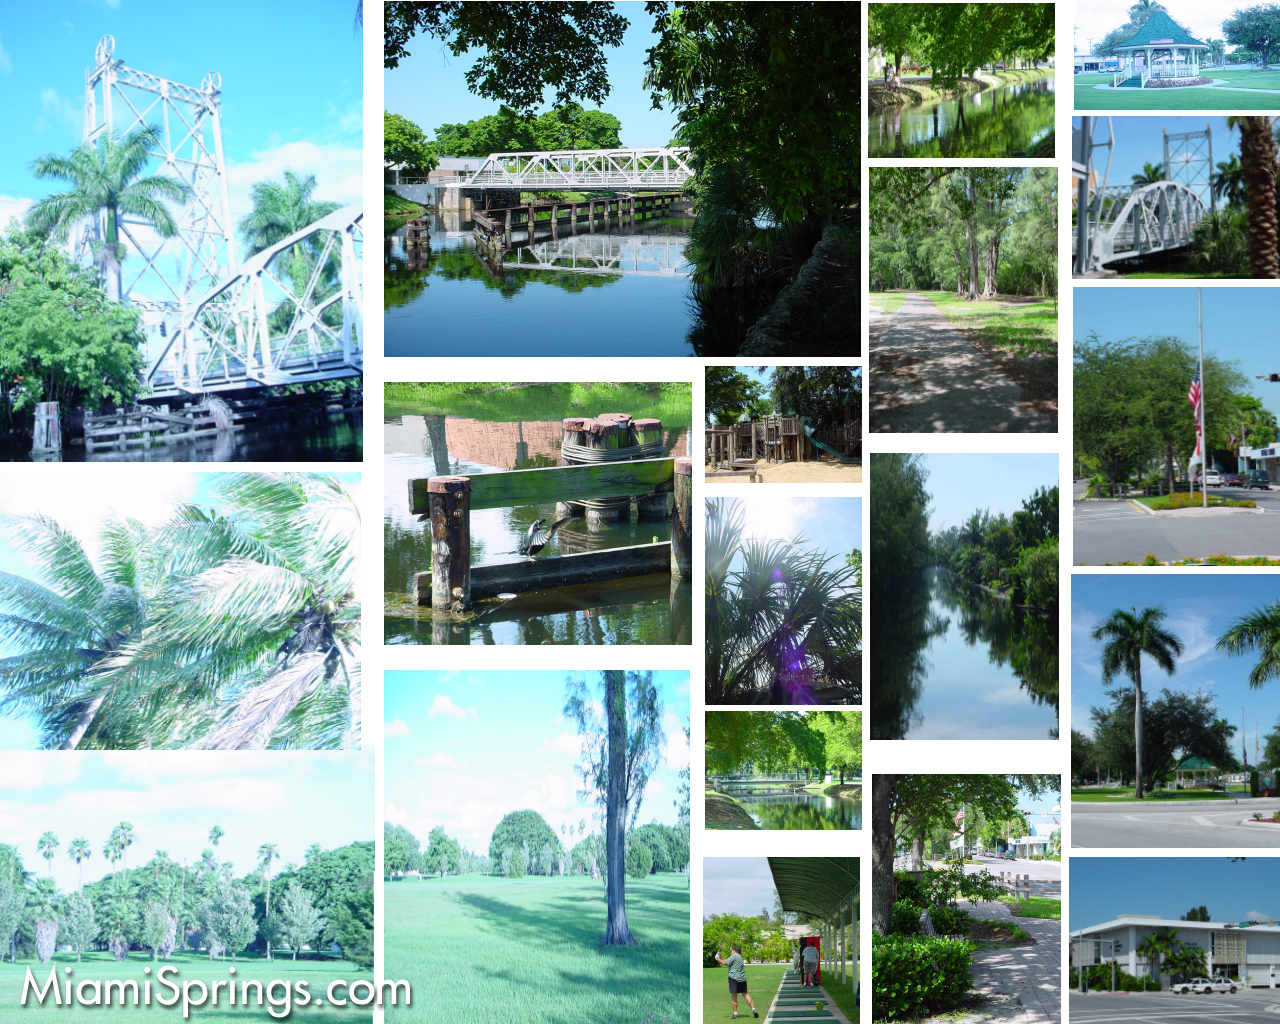 Miami Springs Collage